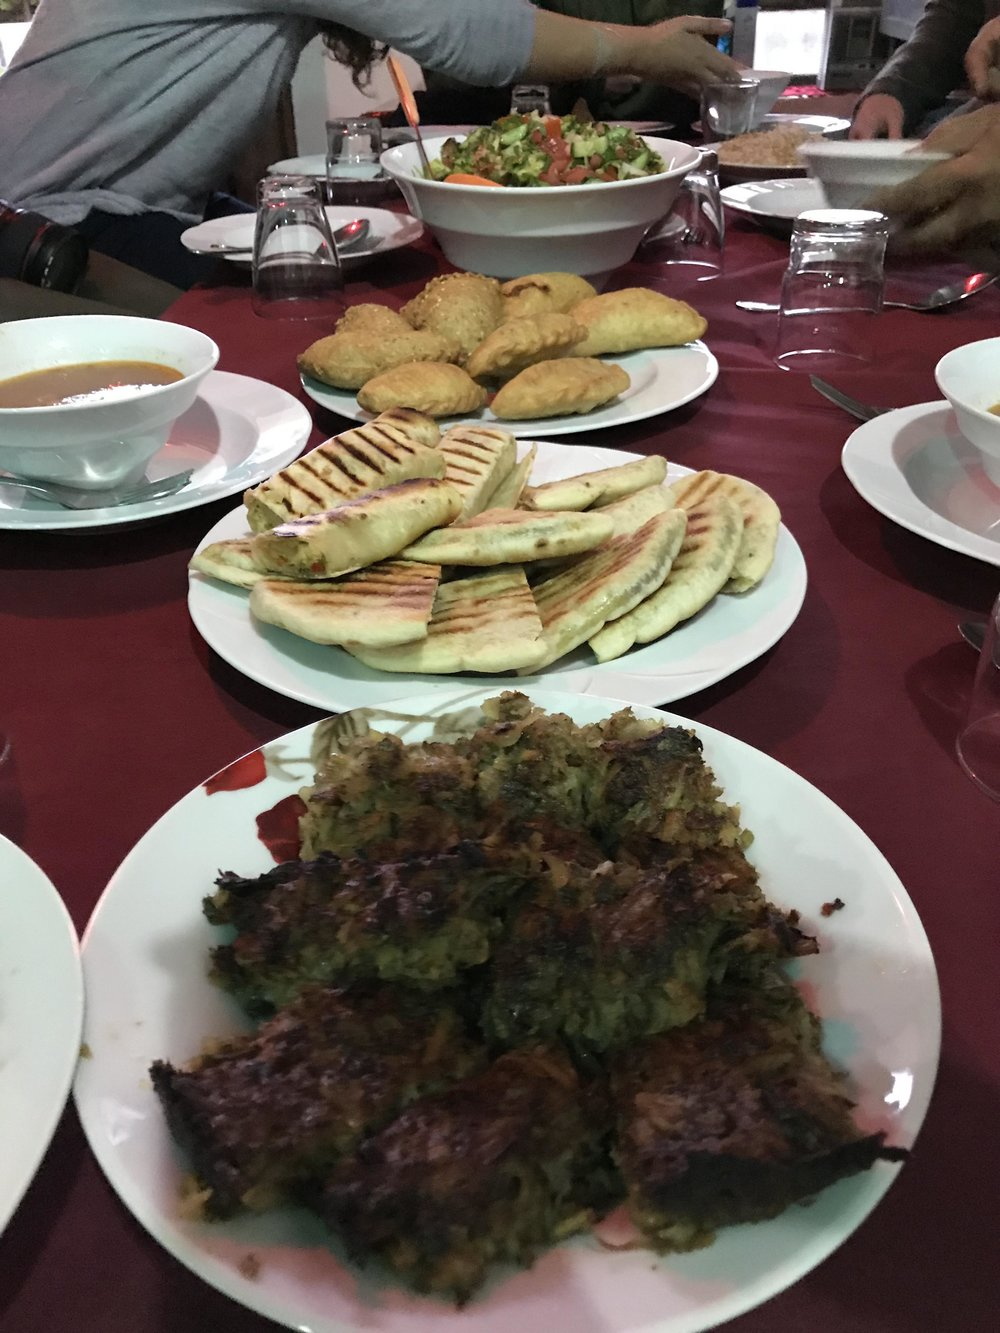 IMG_0827 lower quality druze food.jpg